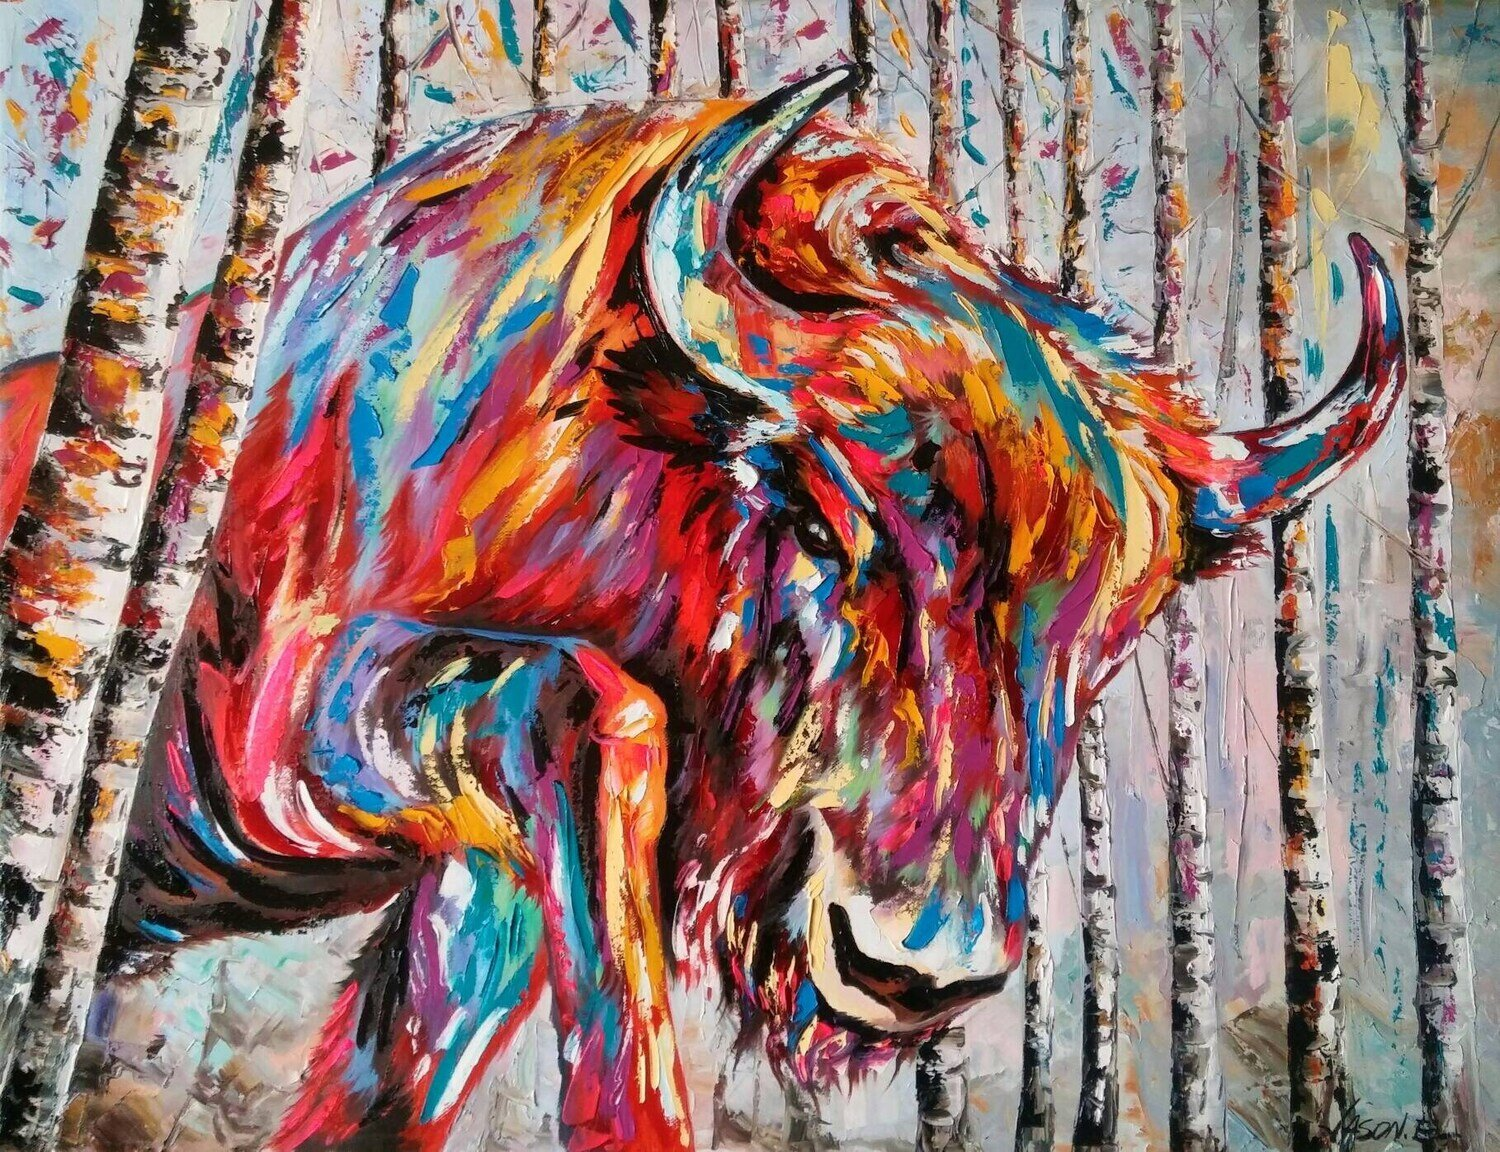 Raging Buffalo Spontaneous Realism painting. Oil on canvas Abstract Modern Art Animal Art Wall Art Original Painting All sizes available